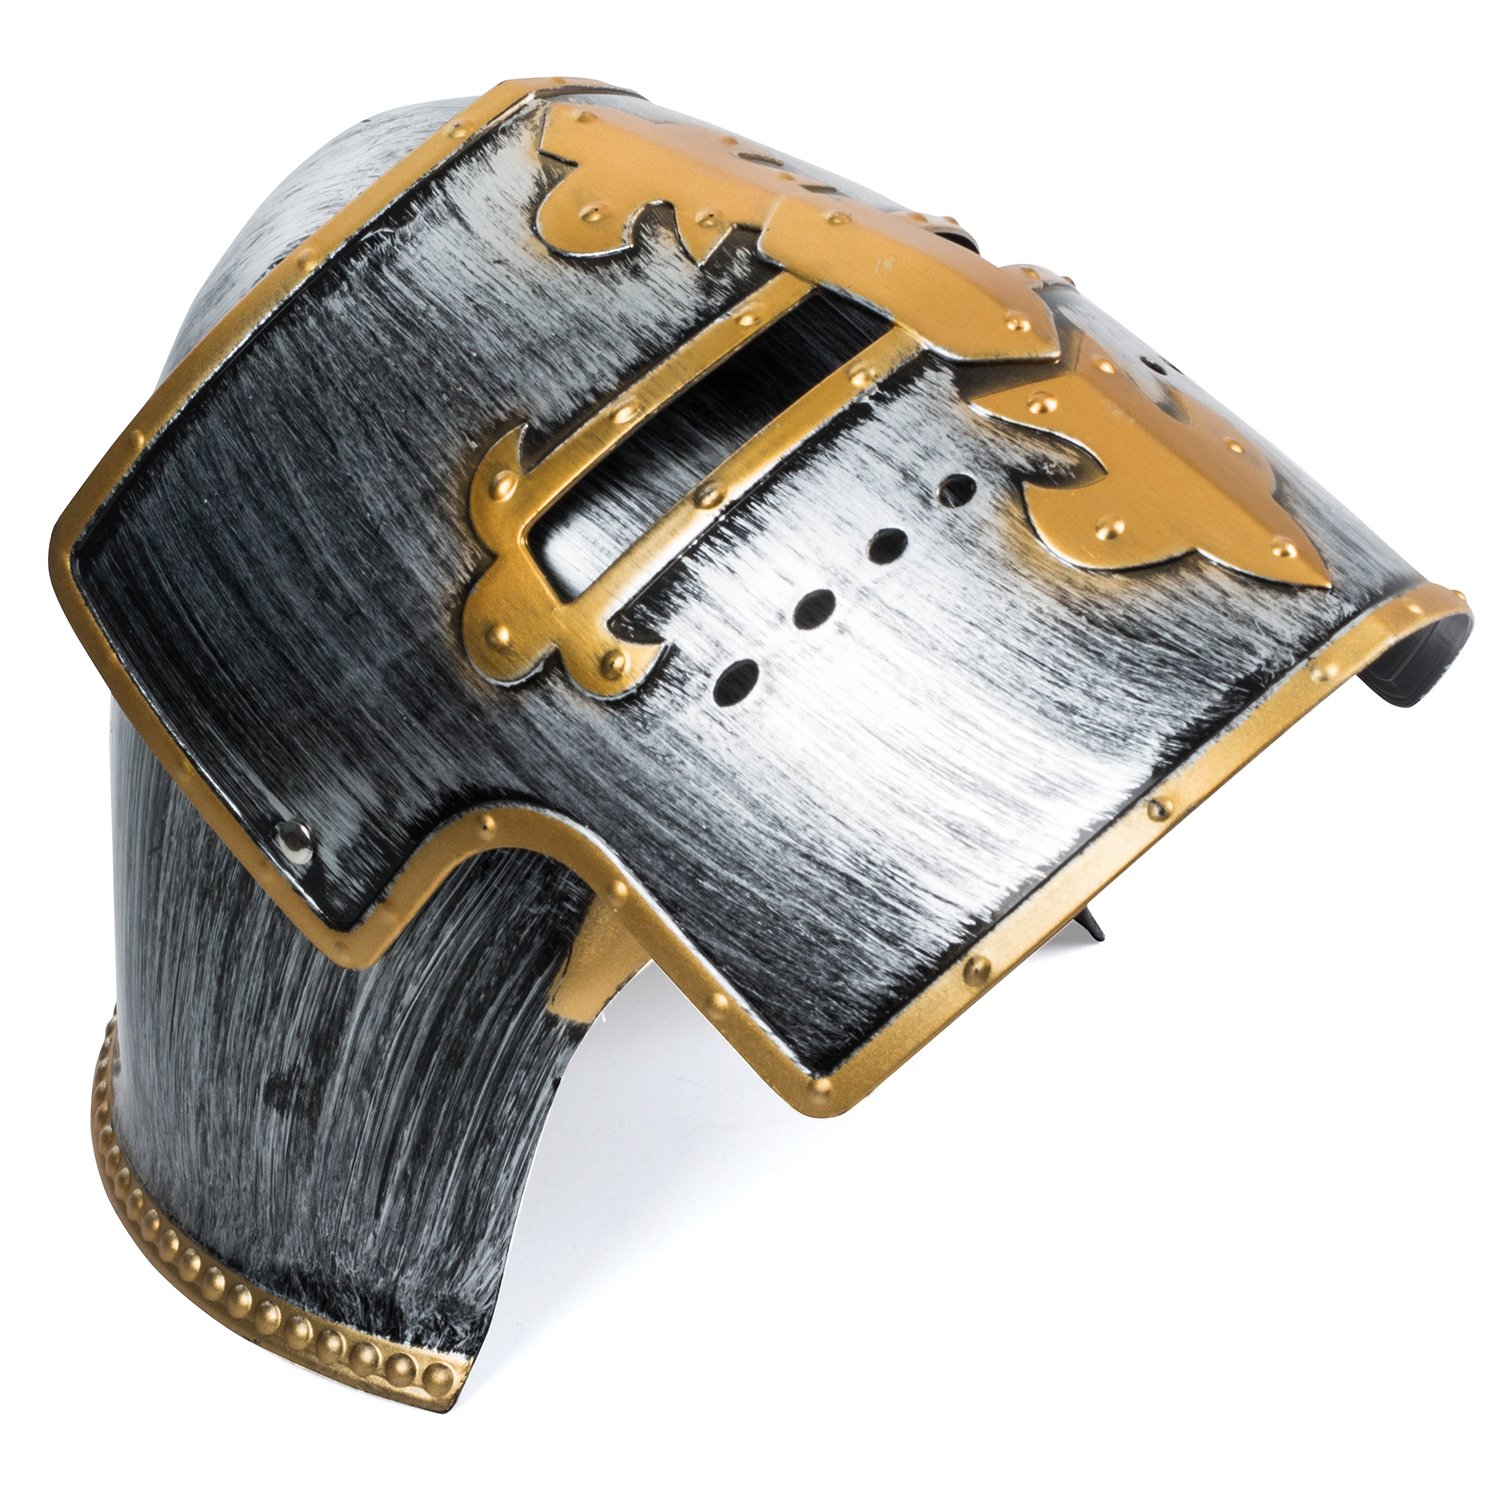 Tigerdoe Gladiator Costume - Helmet, Shield, Sword - Roman Armor - Knight - 3 Pc Set - Costumes for Men by Tigerdoe (Image #5)